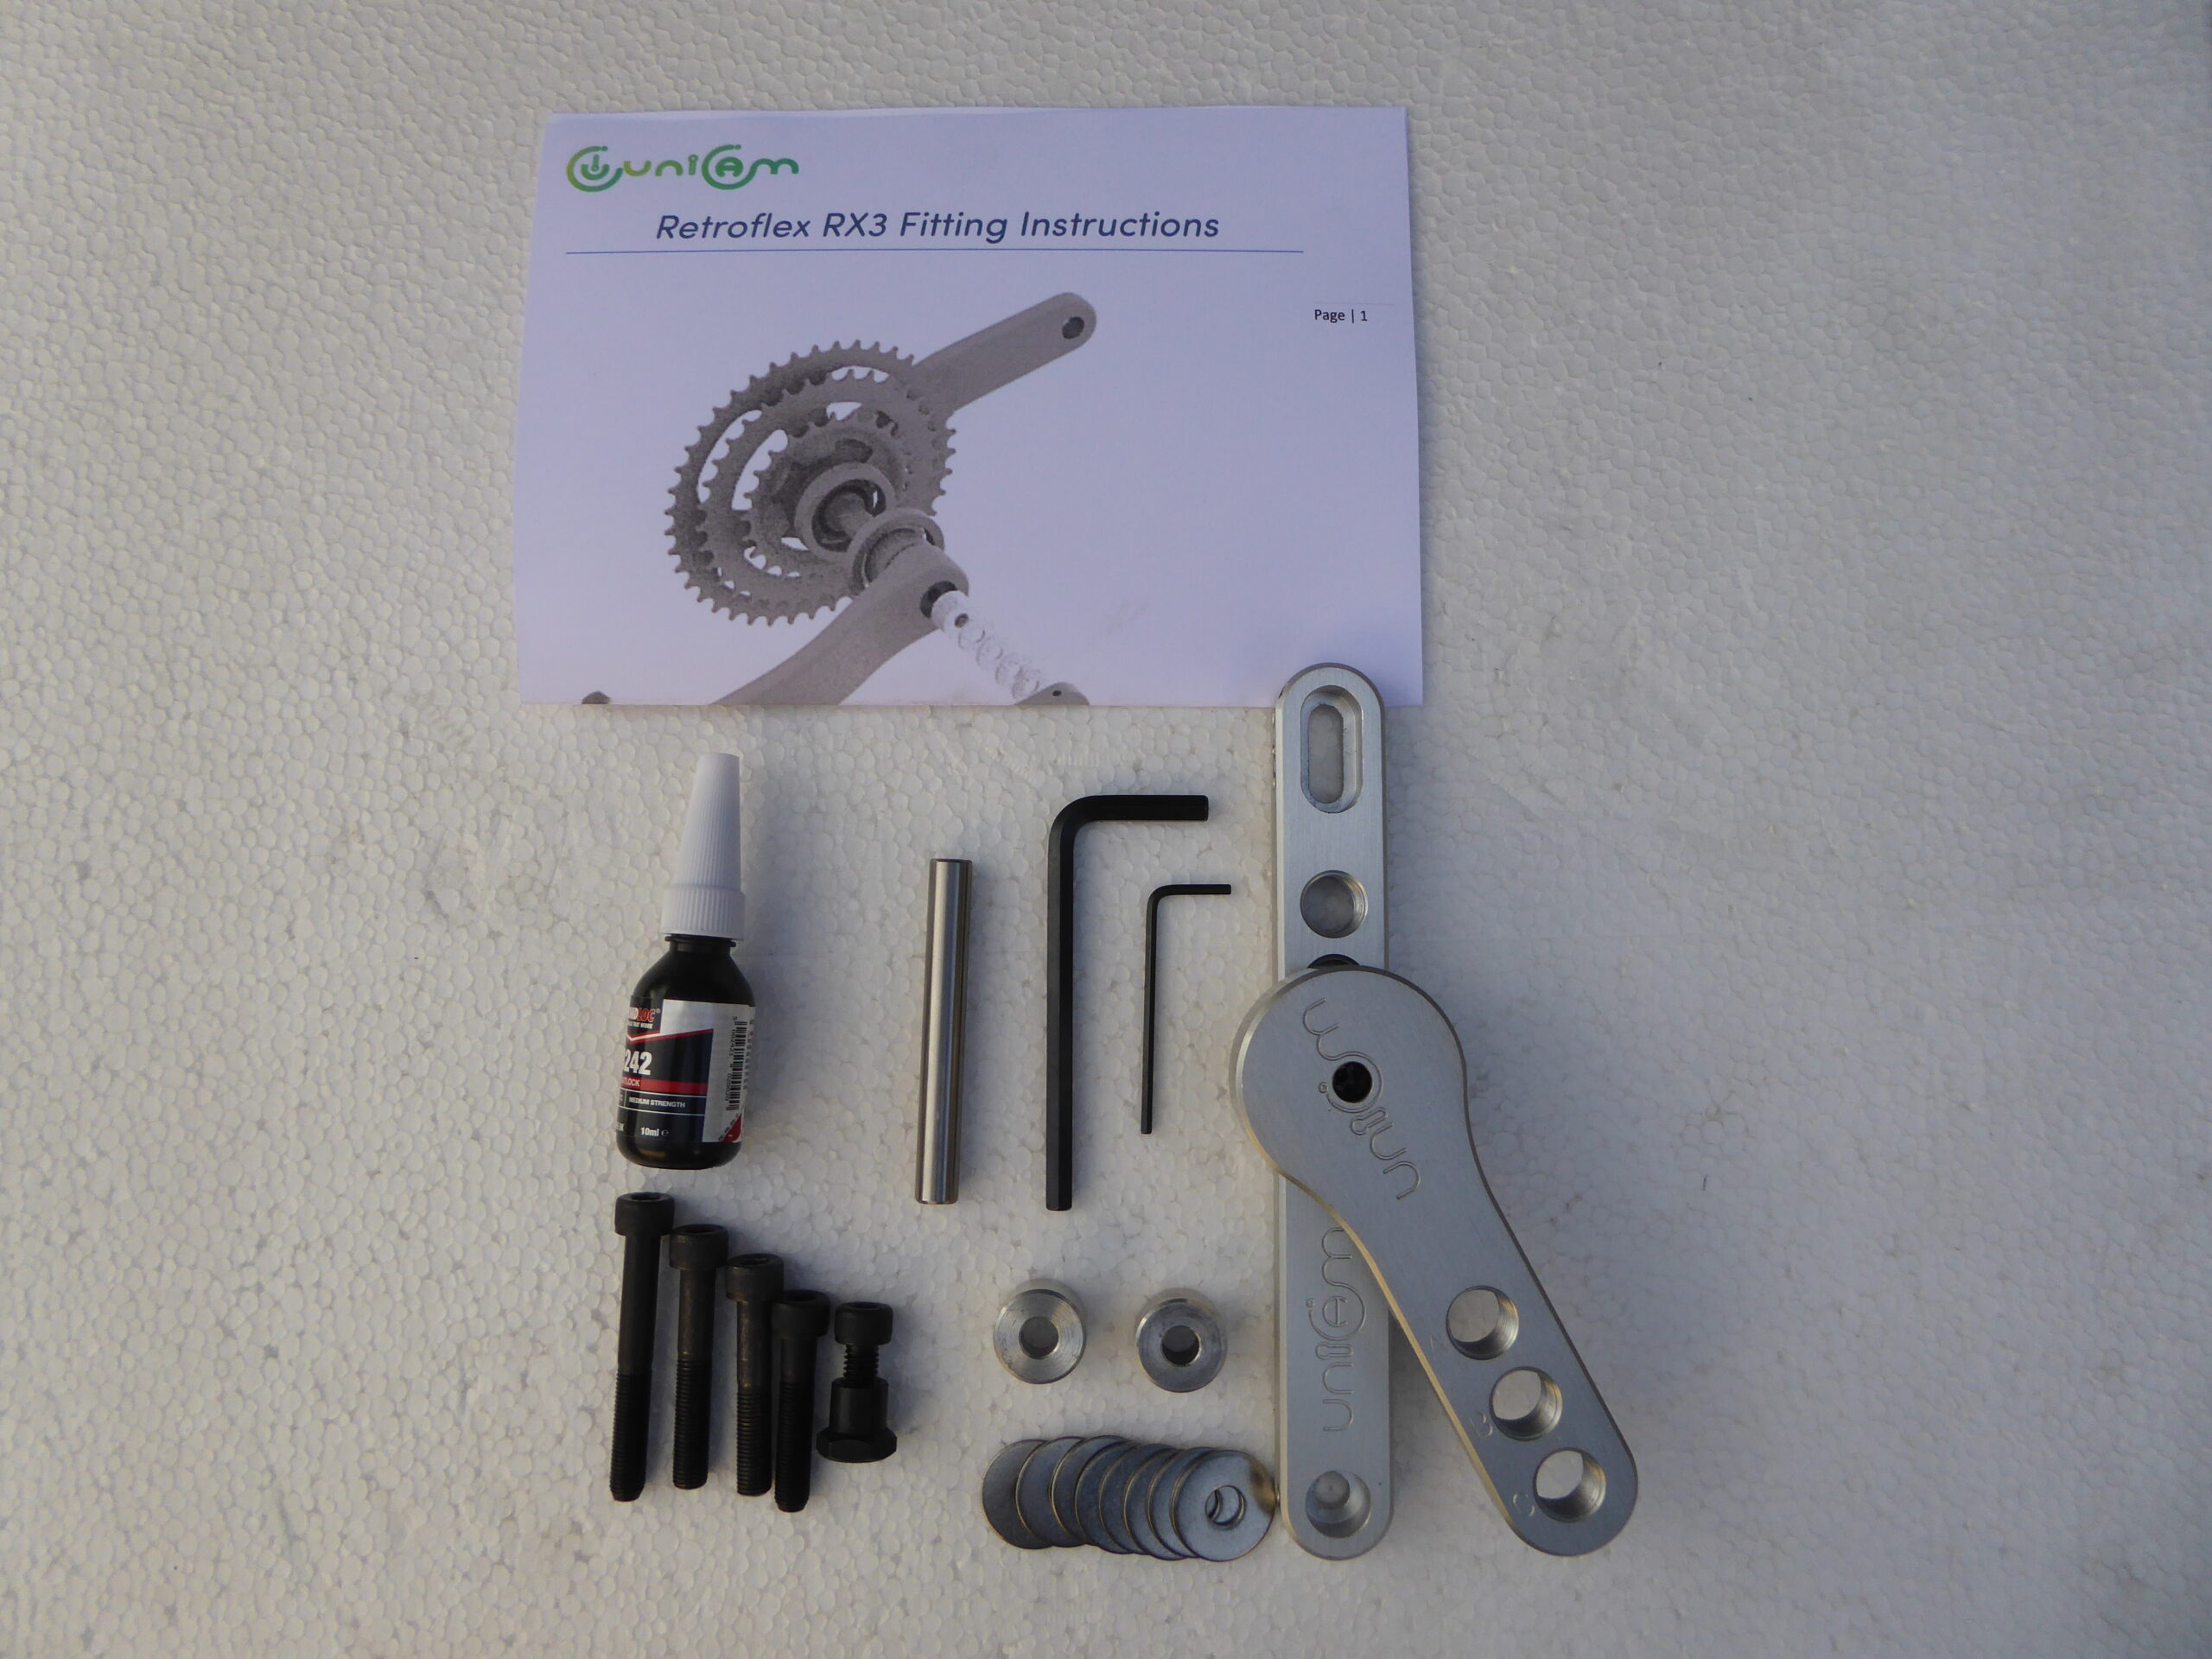 Retroflex RX3 kit and fitting instructions